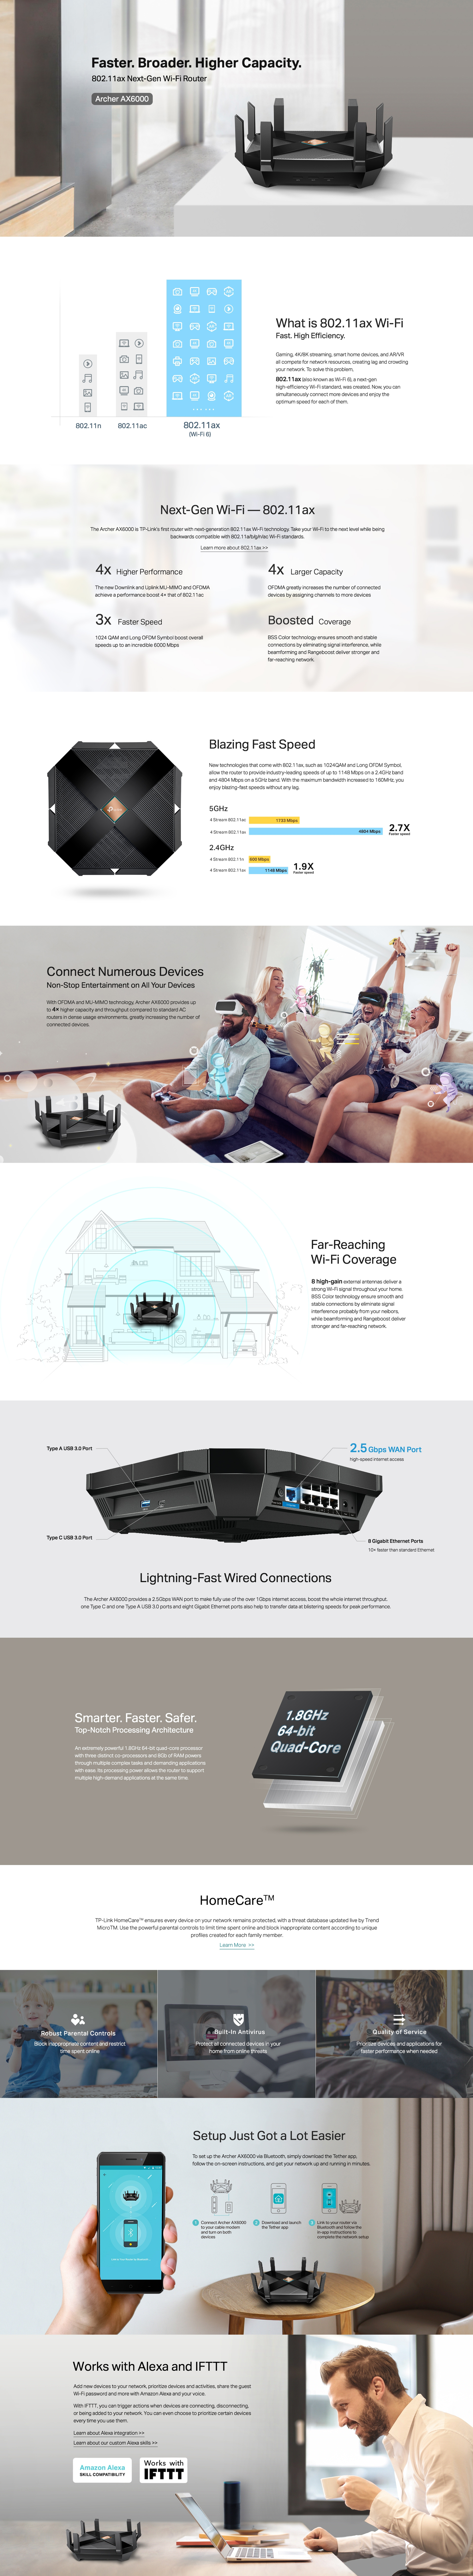 A large marketing image providing additional information about the product TP-LINK Archer AX6000 Dual Band MU-MIMO Gigabit Router - Additional alt info not provided